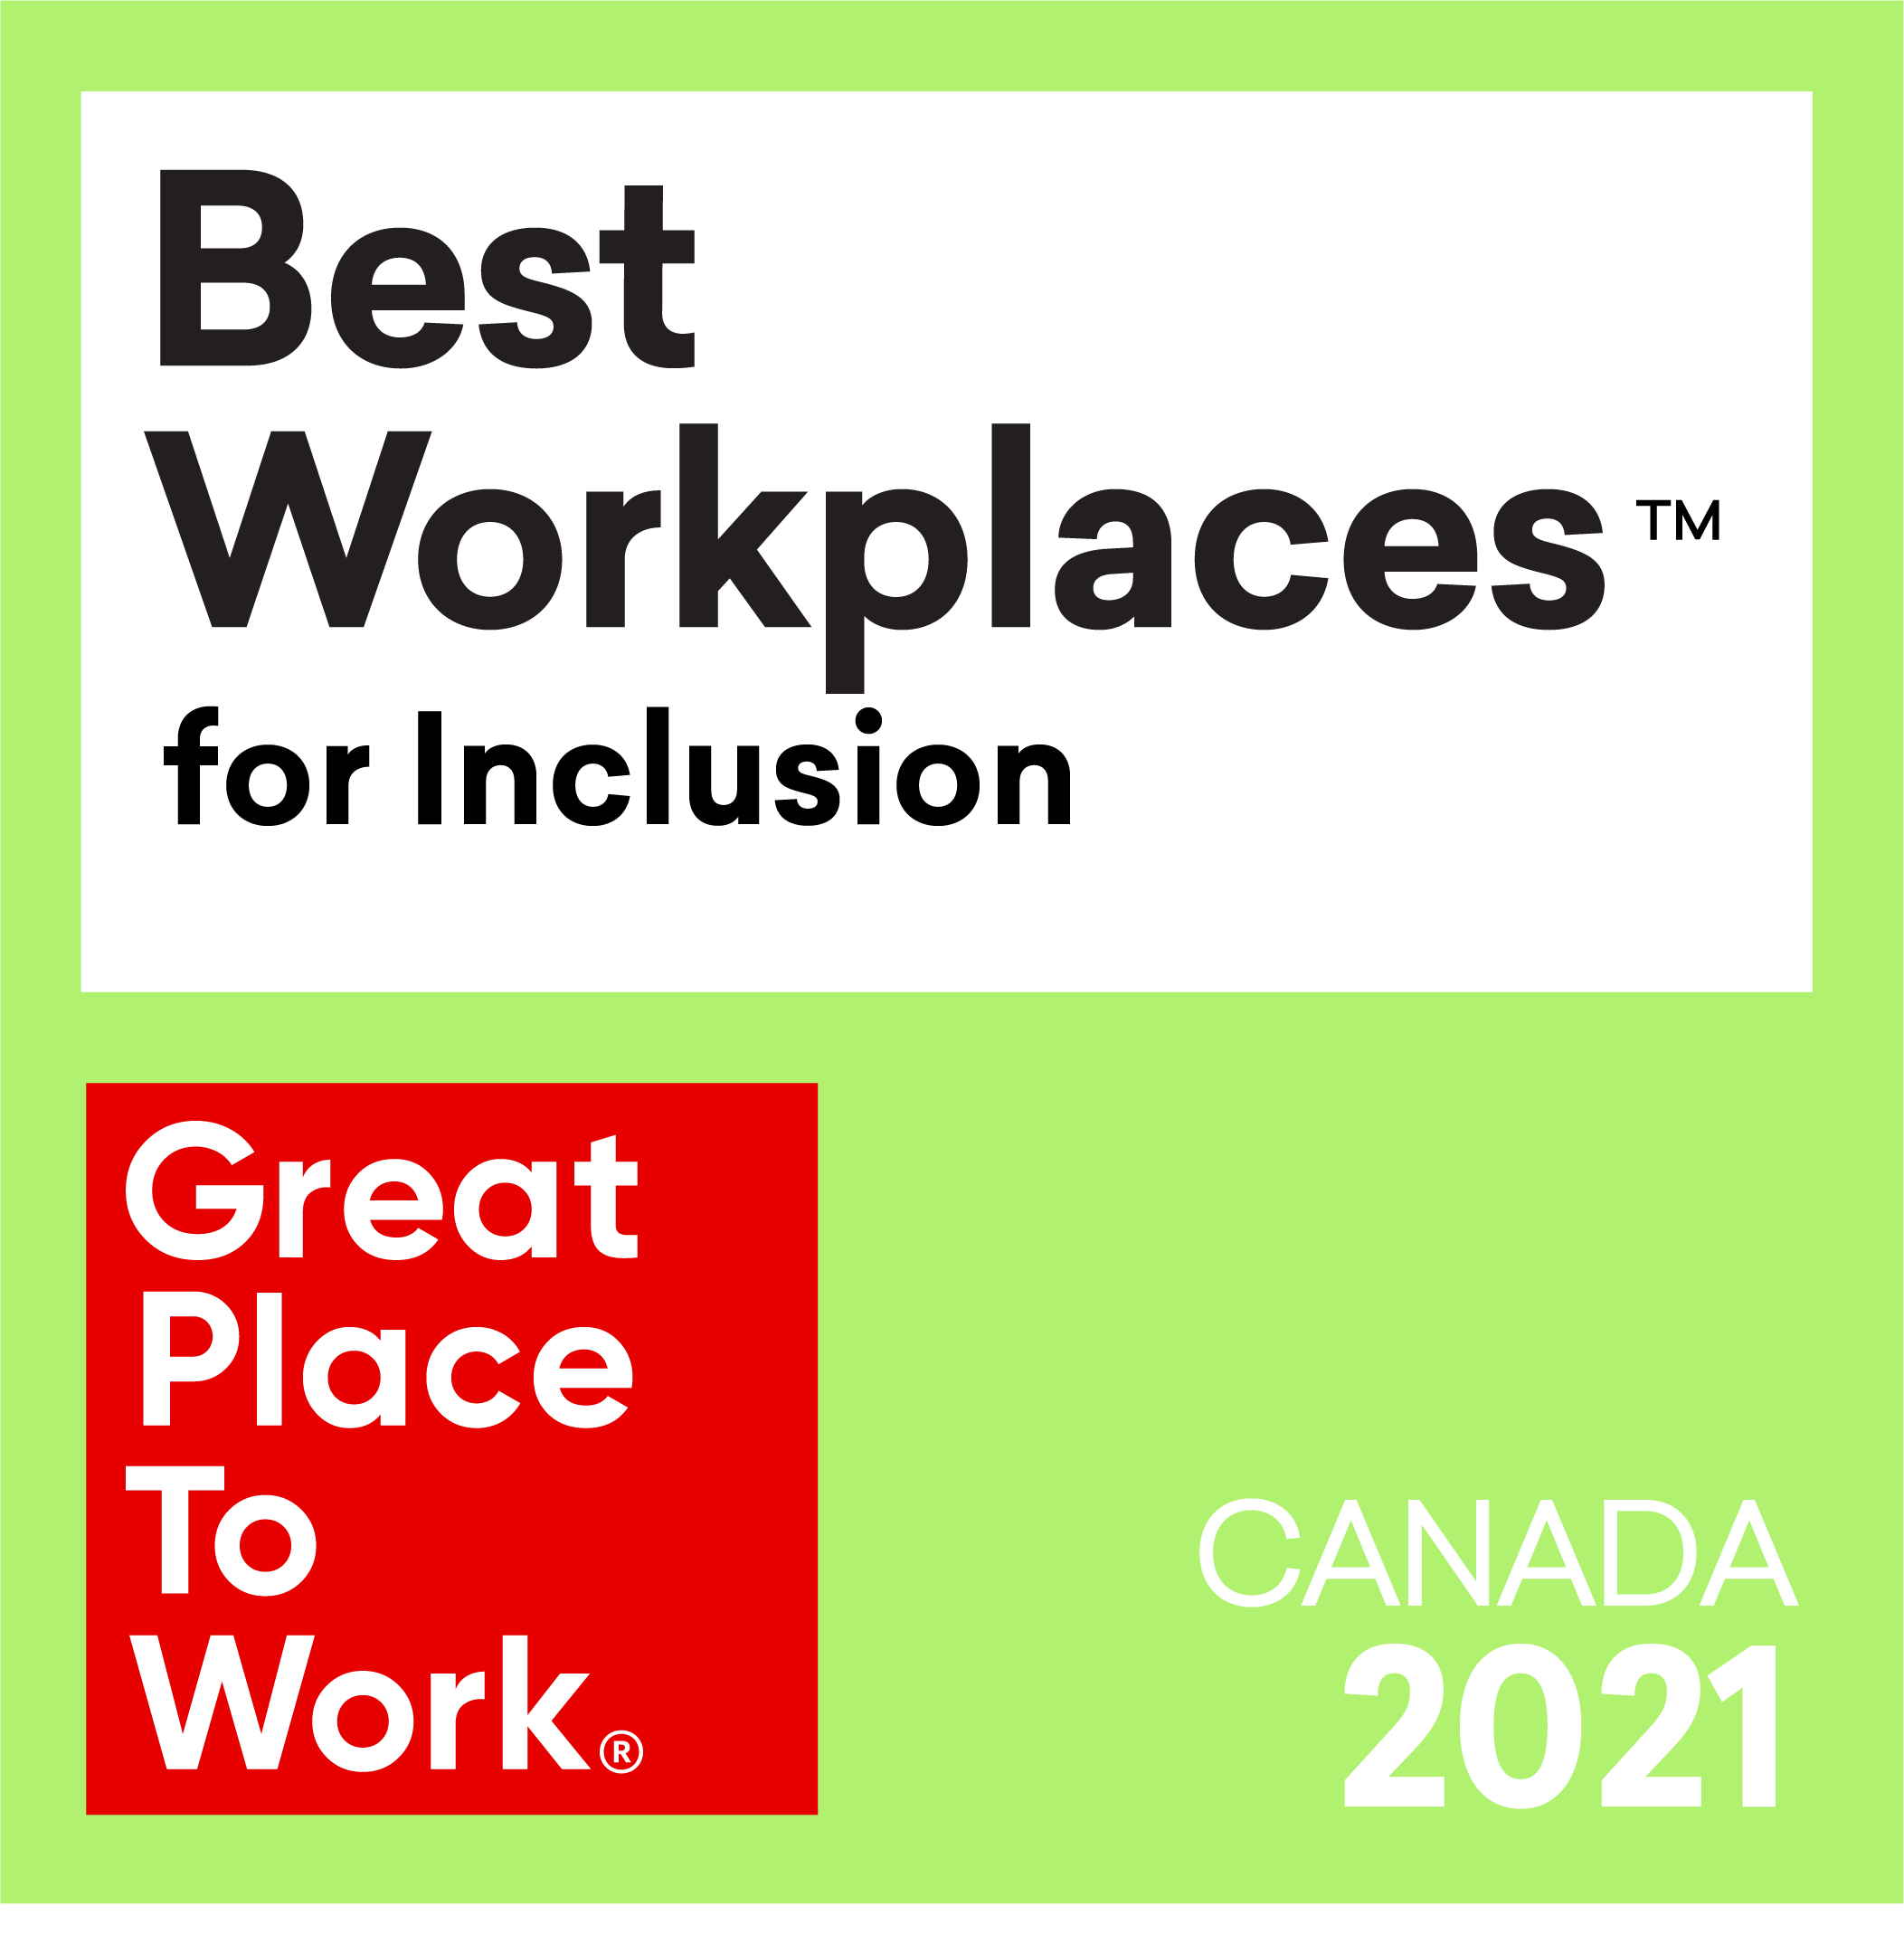 Best Workplaces for Inclusion 2021